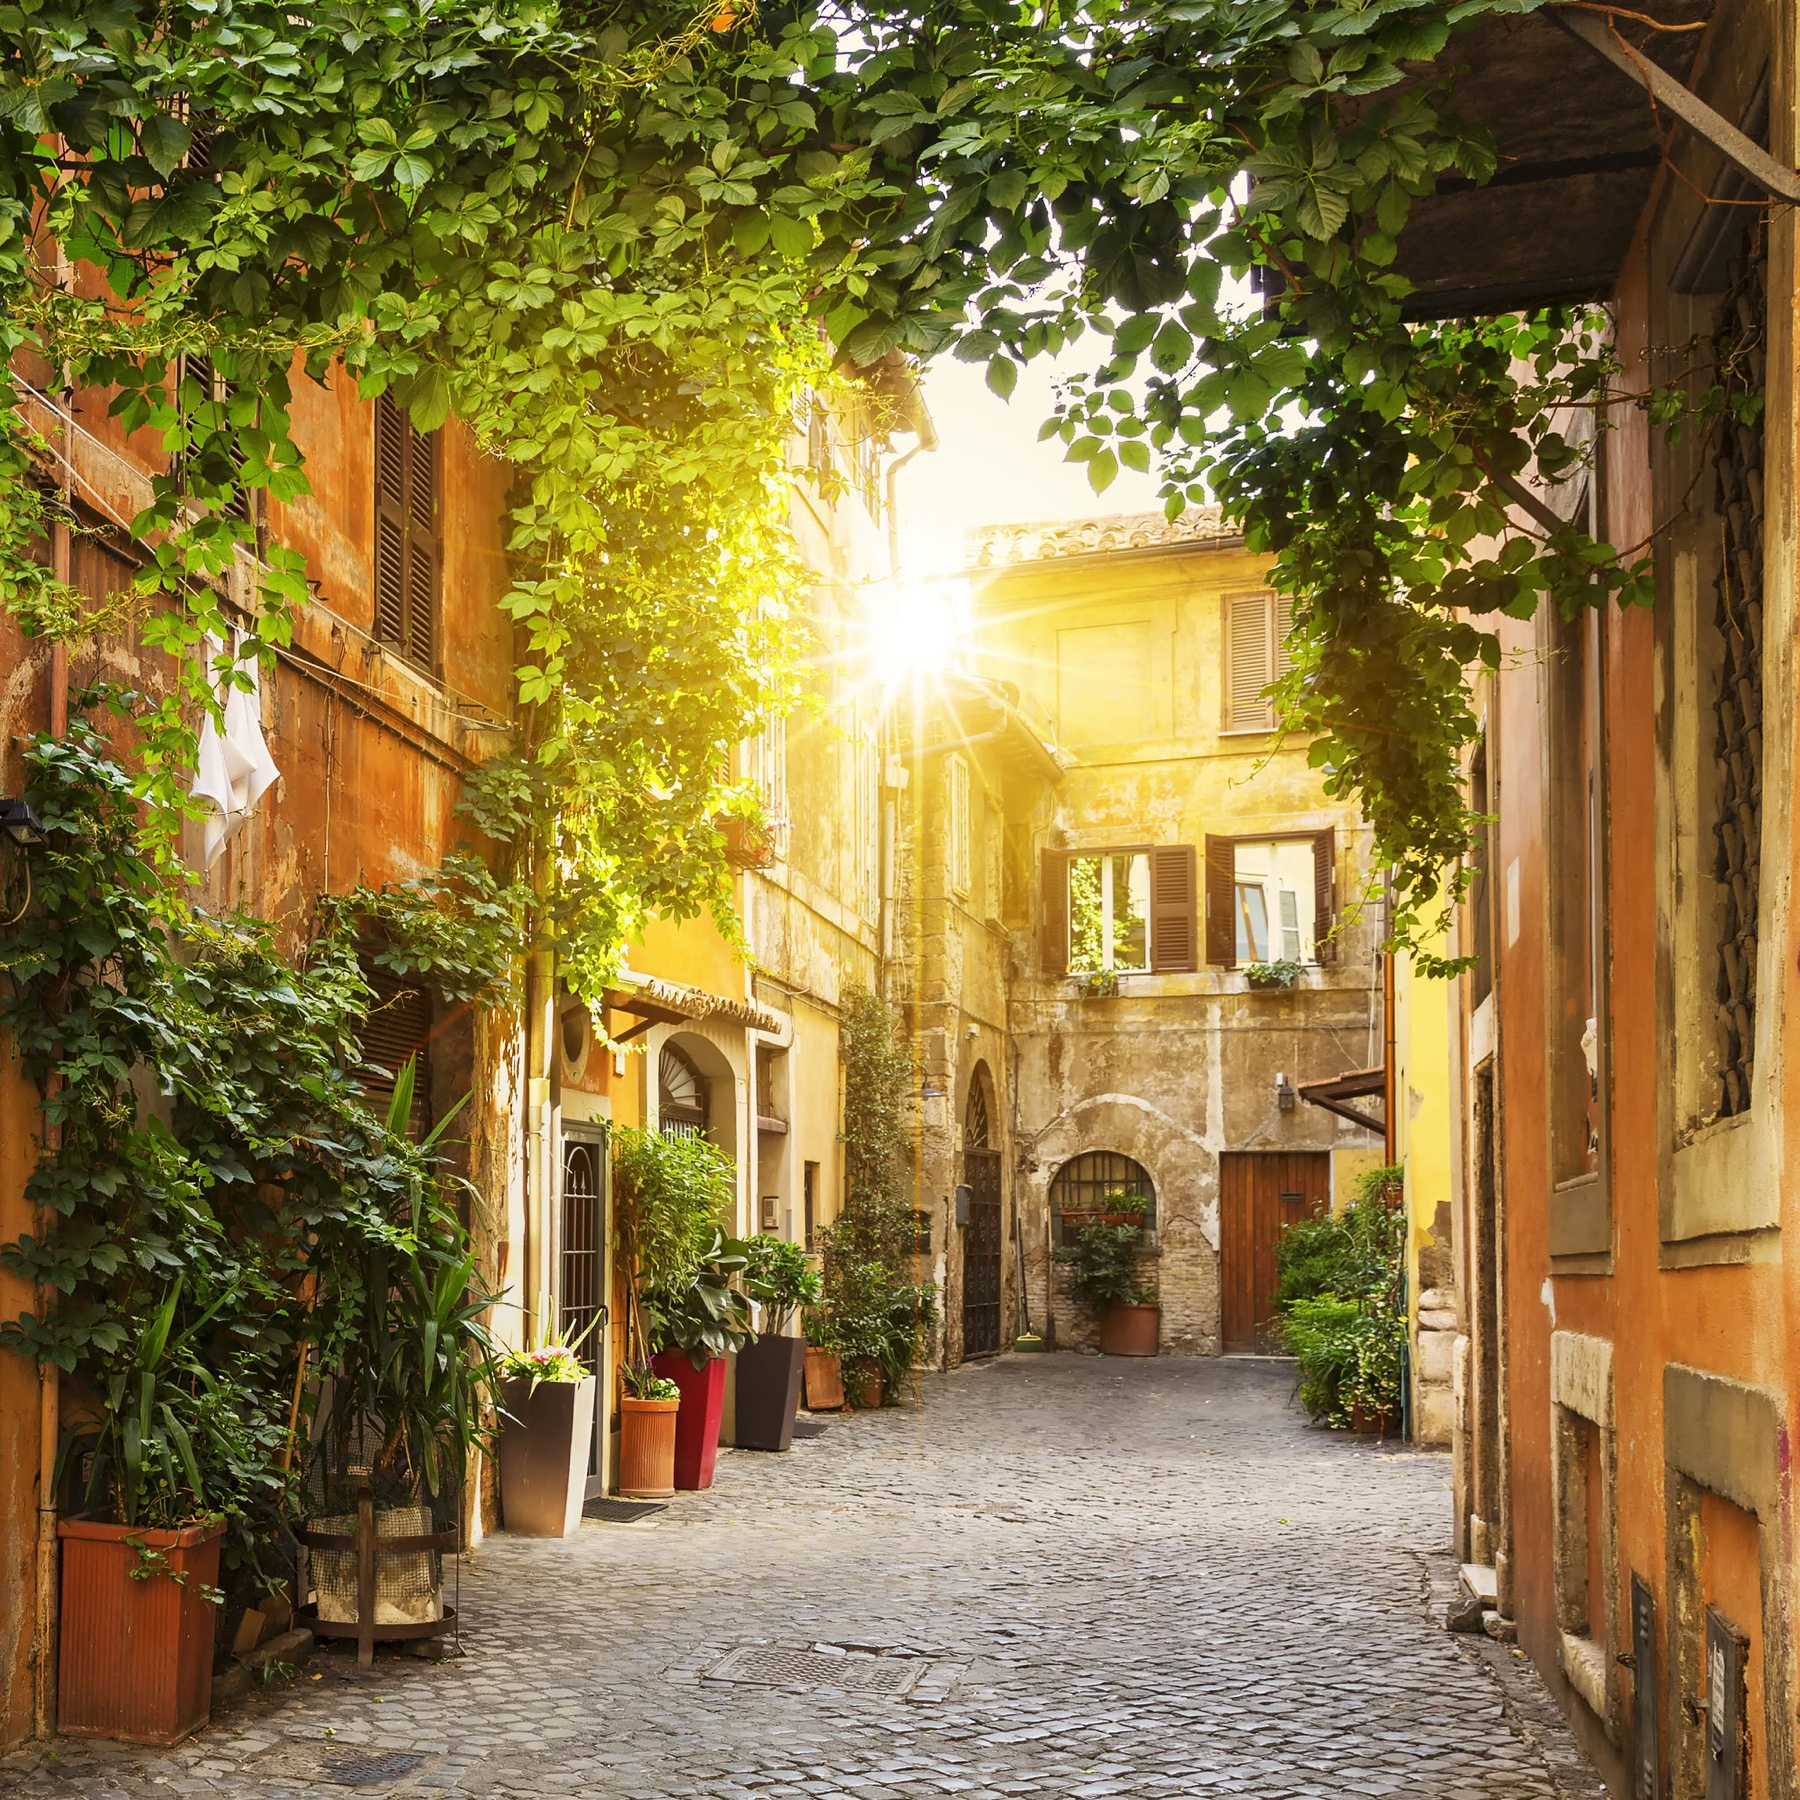 View of Old street in Trastevere in Rome